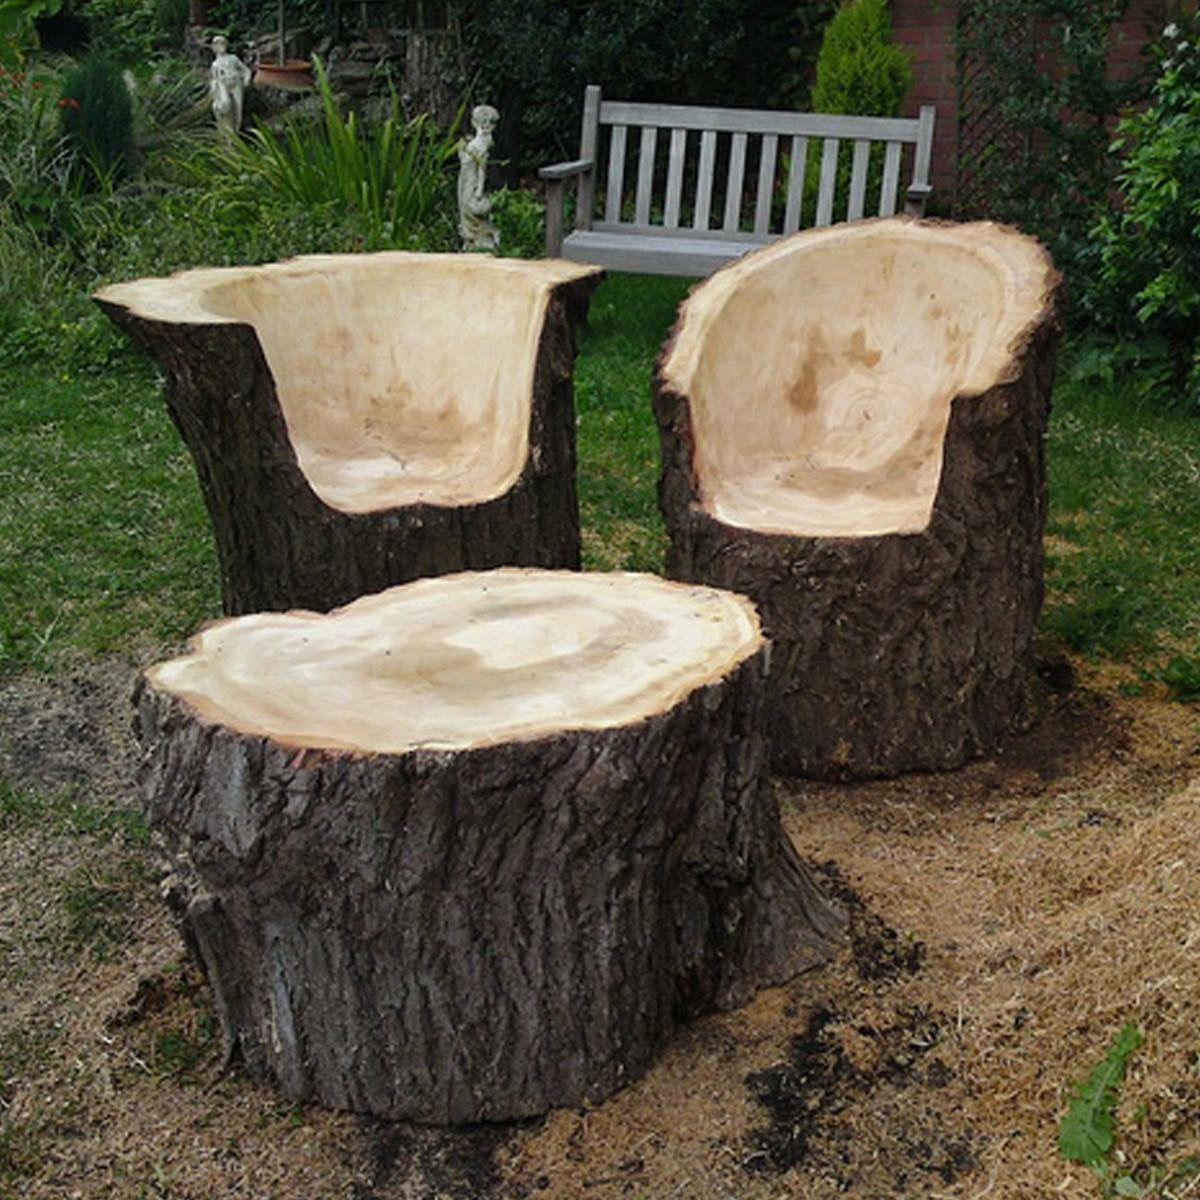 tree stump chairs revolving chair gif pin by jenise tucker on awesomeness pinterest woods